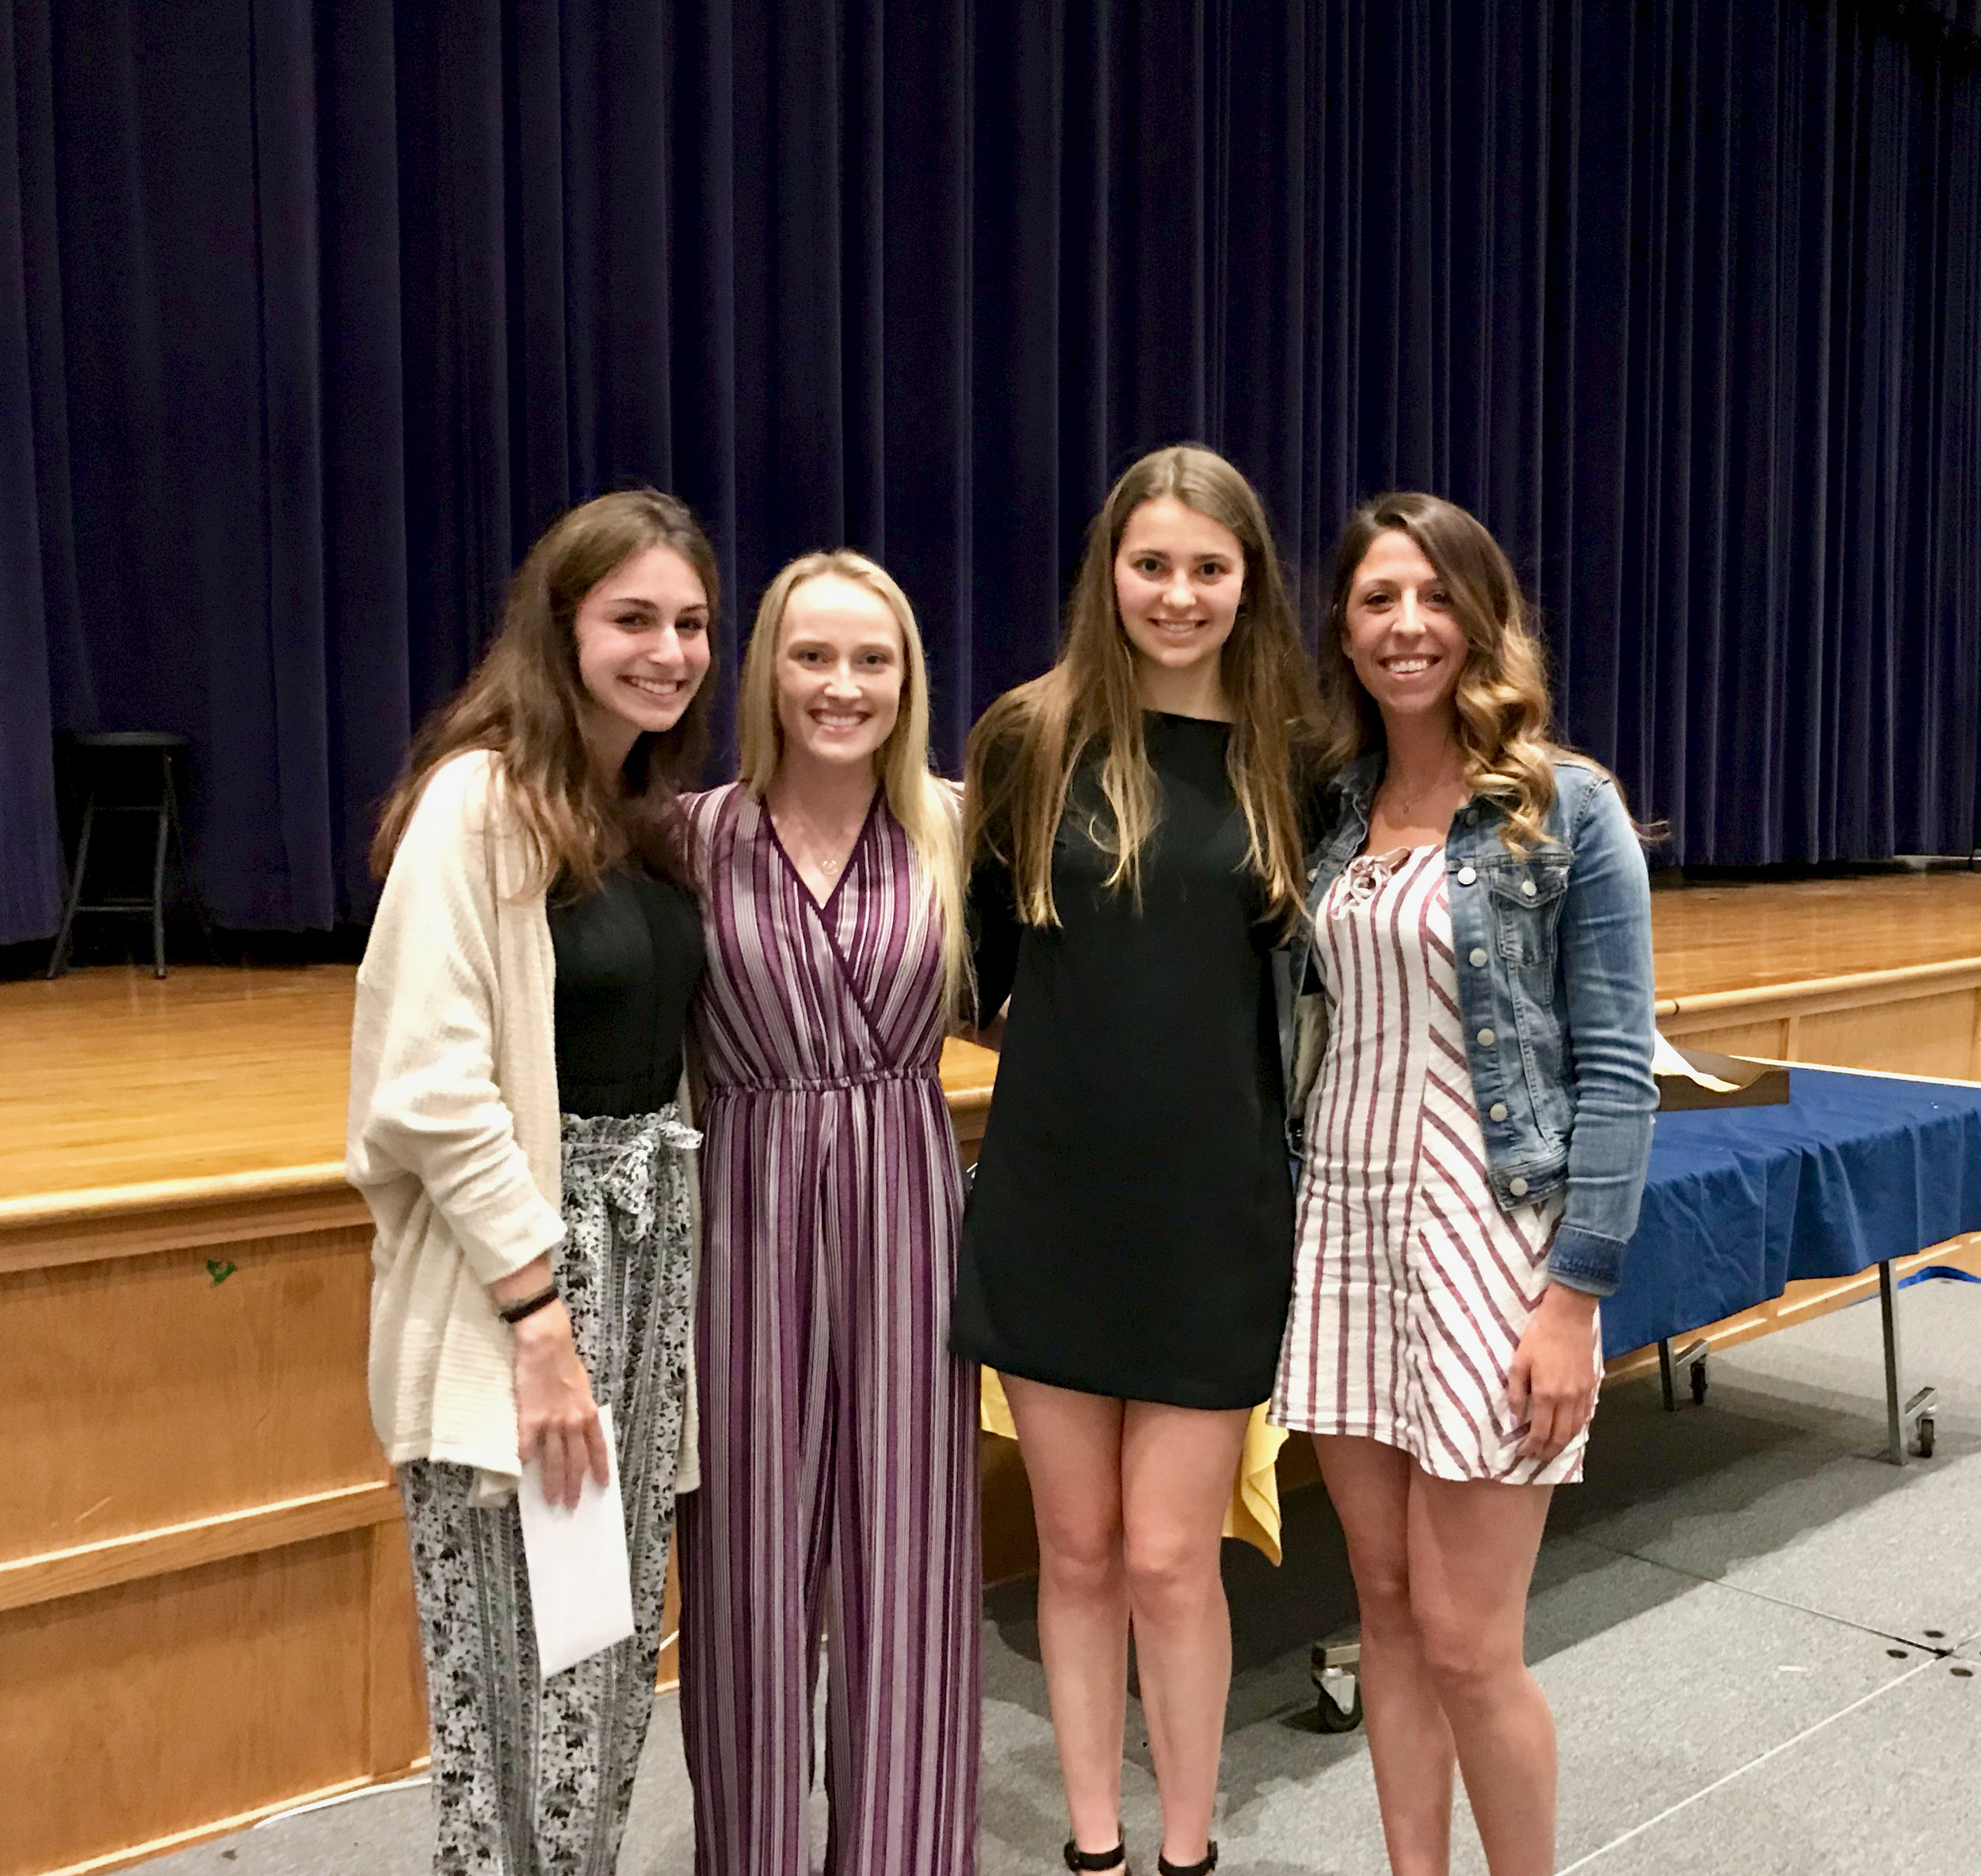 Julianne's friends presenting the 2019 scholarship awards